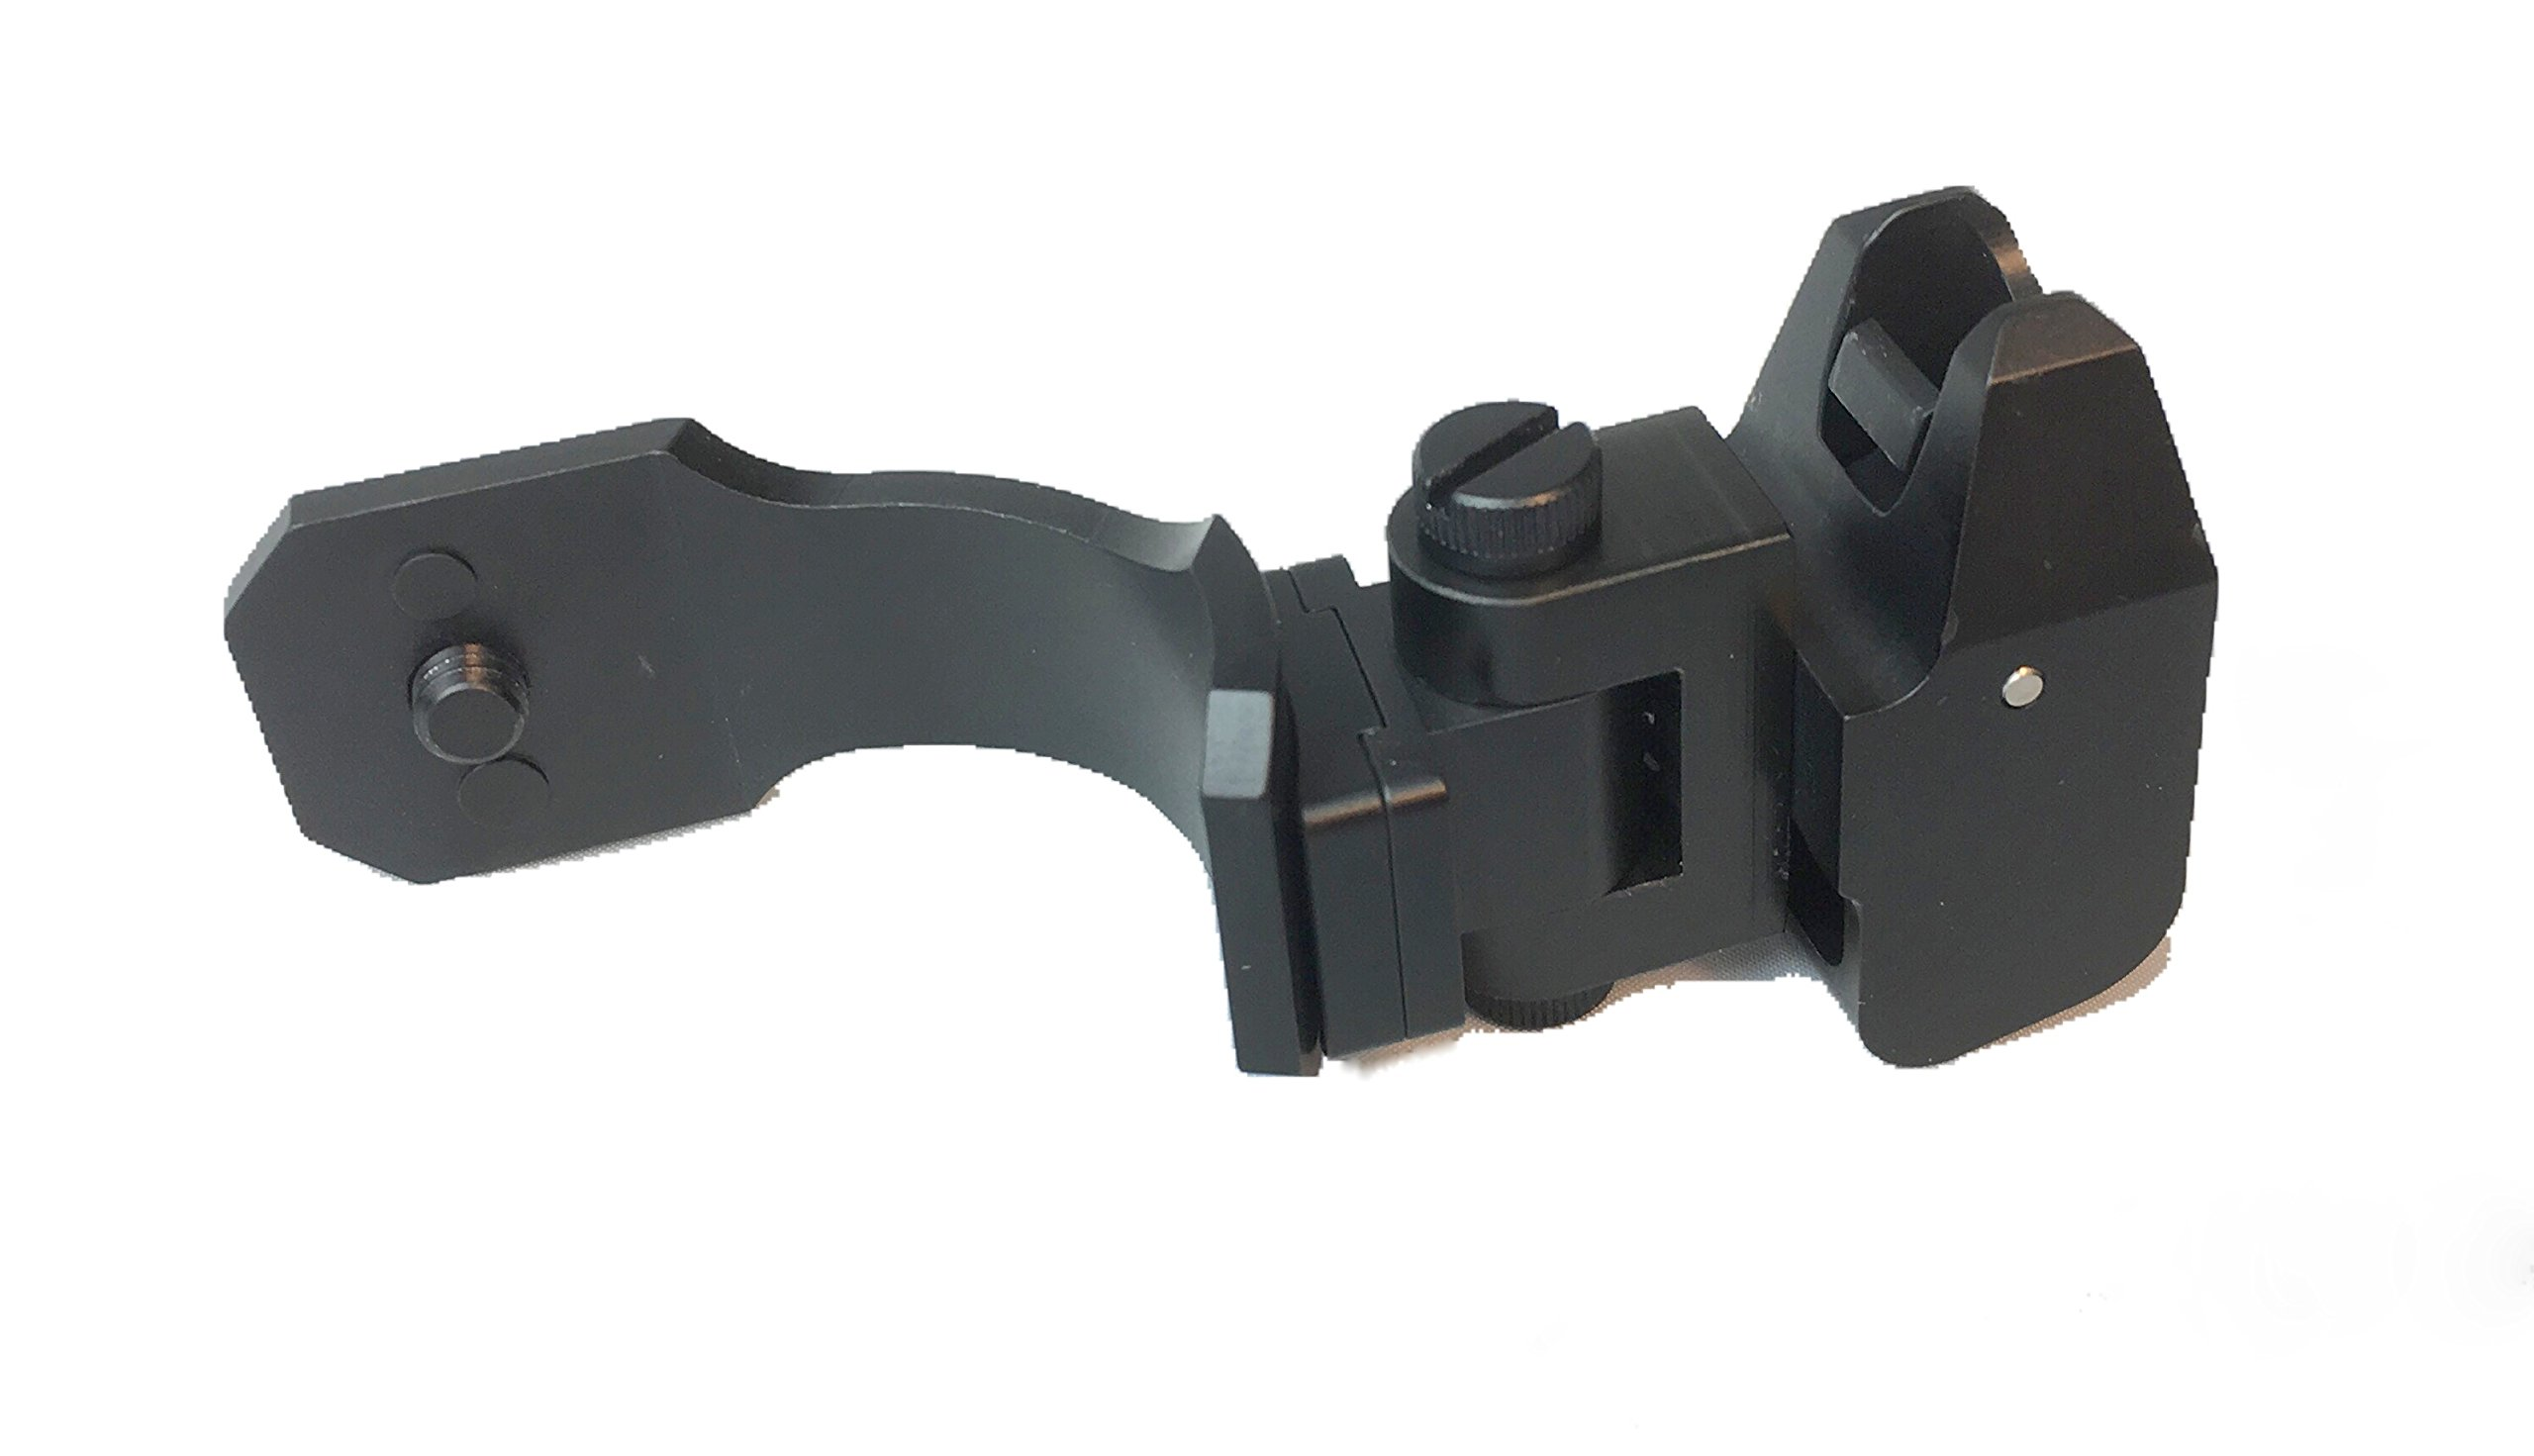 MOD Armory IC PVS-14 J Arm Adapter with NVG Dovetail Shoe or Bayonet Interface by MOD Armory